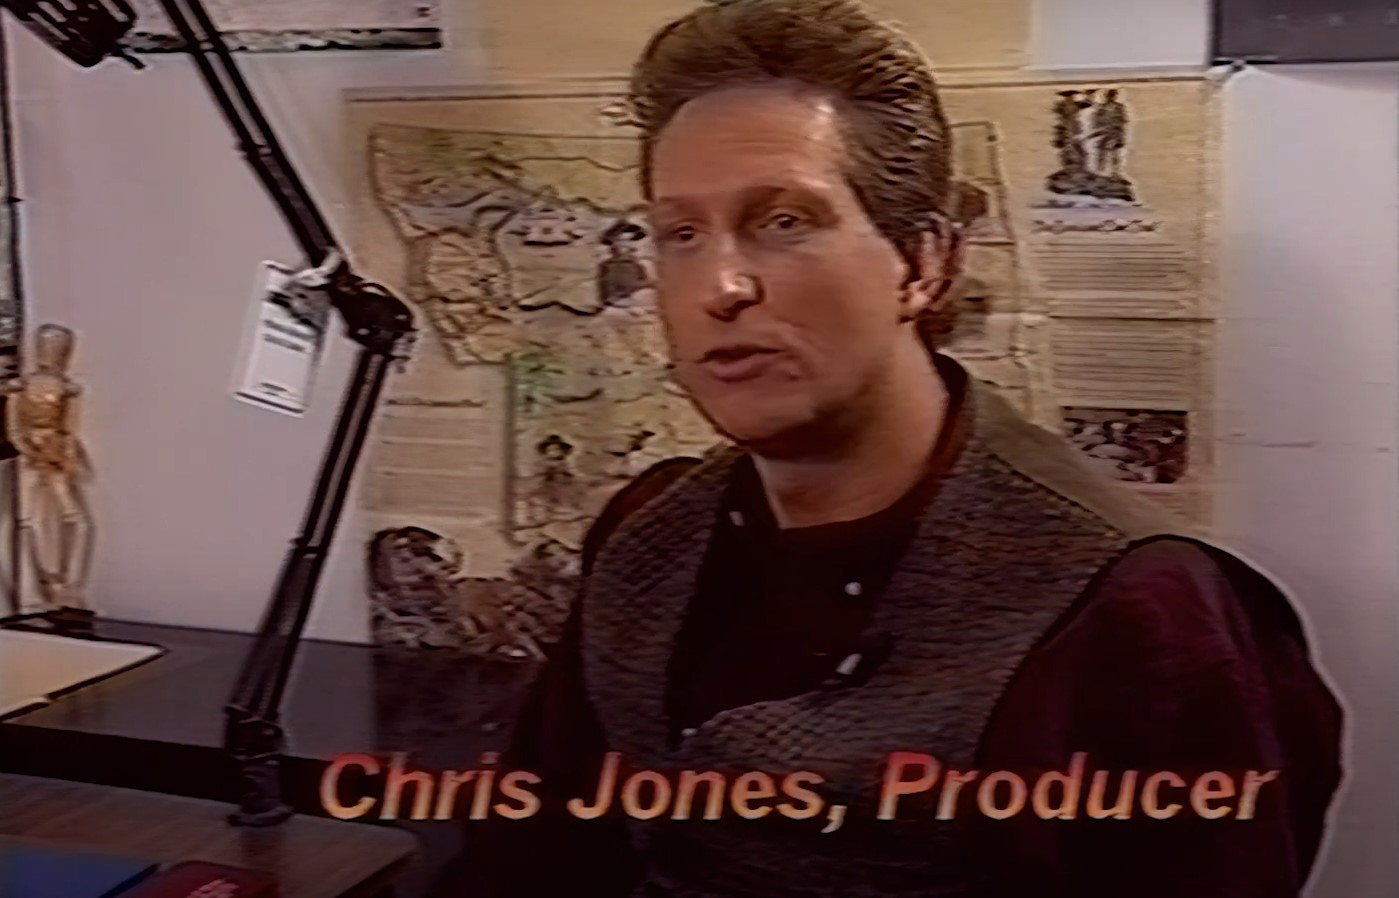 Chris Jones talks about computer technology in the making of The Pandora Directive